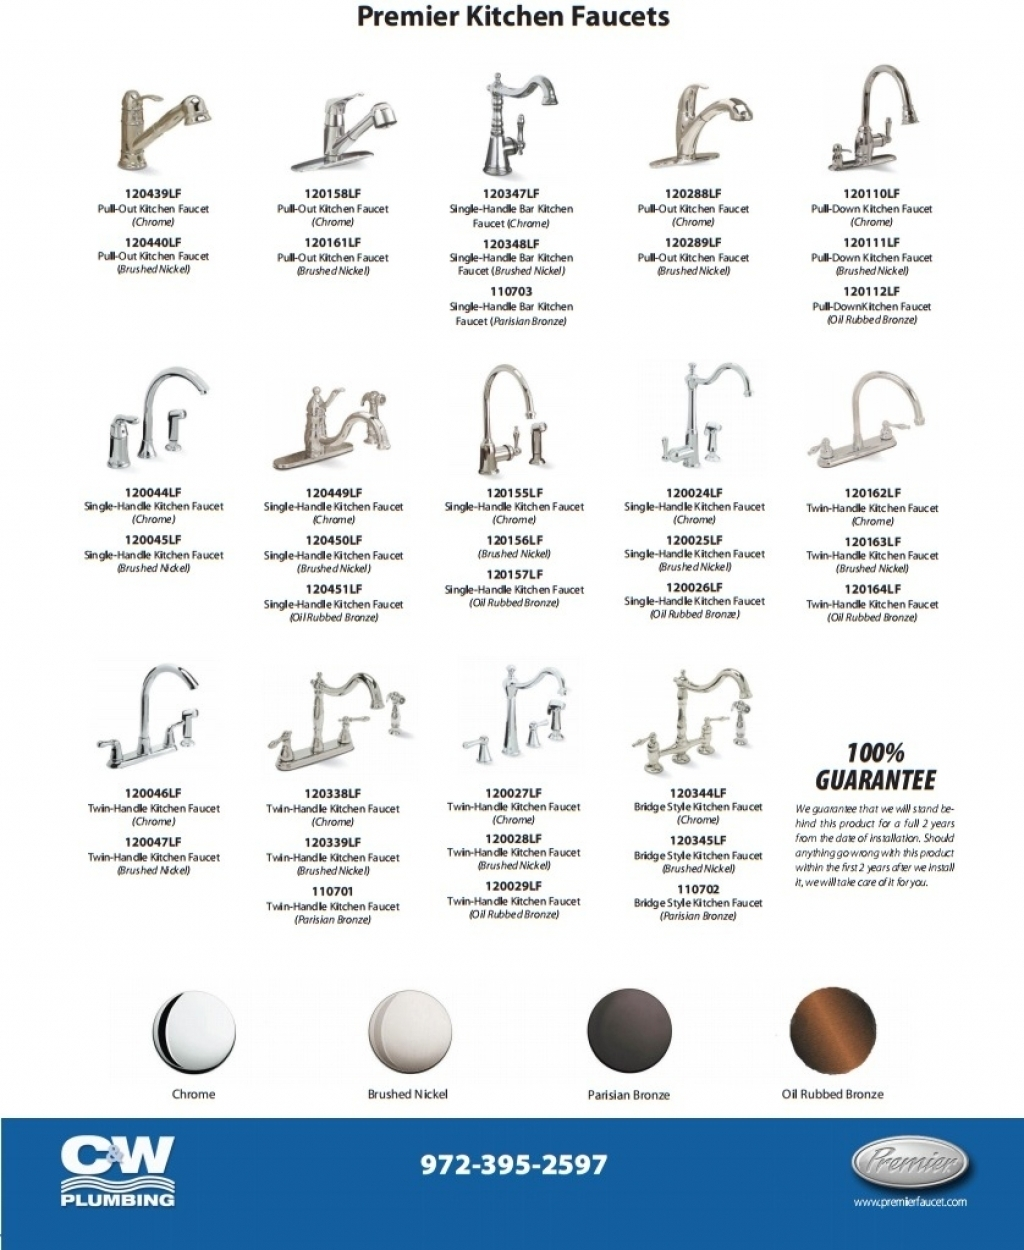 styles of kitchen faucets styles of kitchen faucets s the best pull down kitchen faucet gallery with types of faucets 1024 x 1250